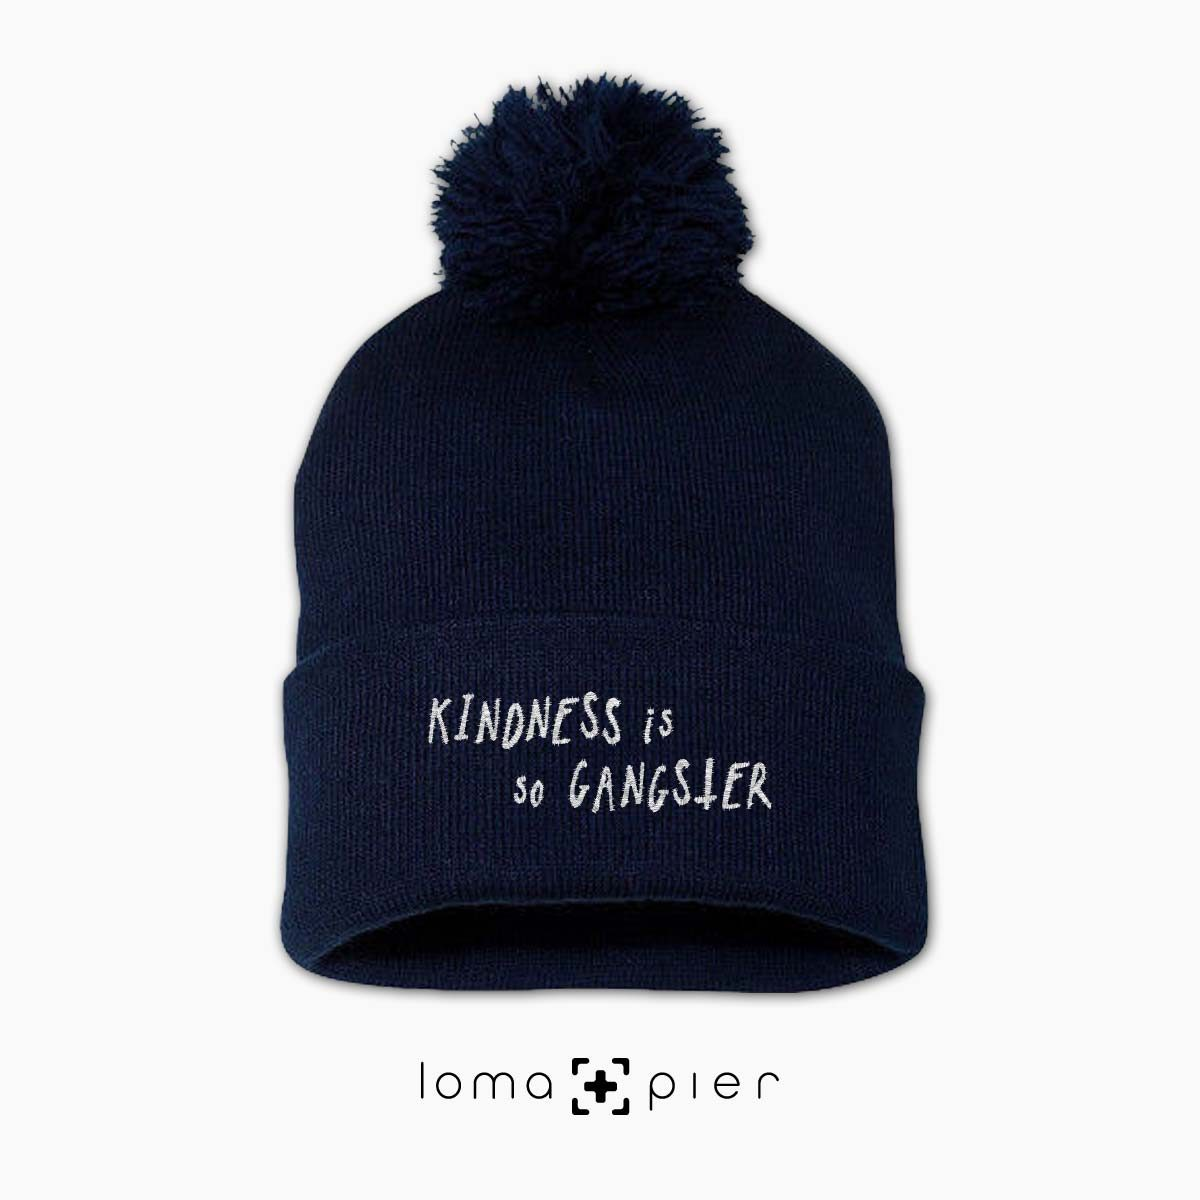 KINDNESS IS SO GANGSTER typography embroidered on a navy blue pom pom beanie with white thread by loma+pier hat store